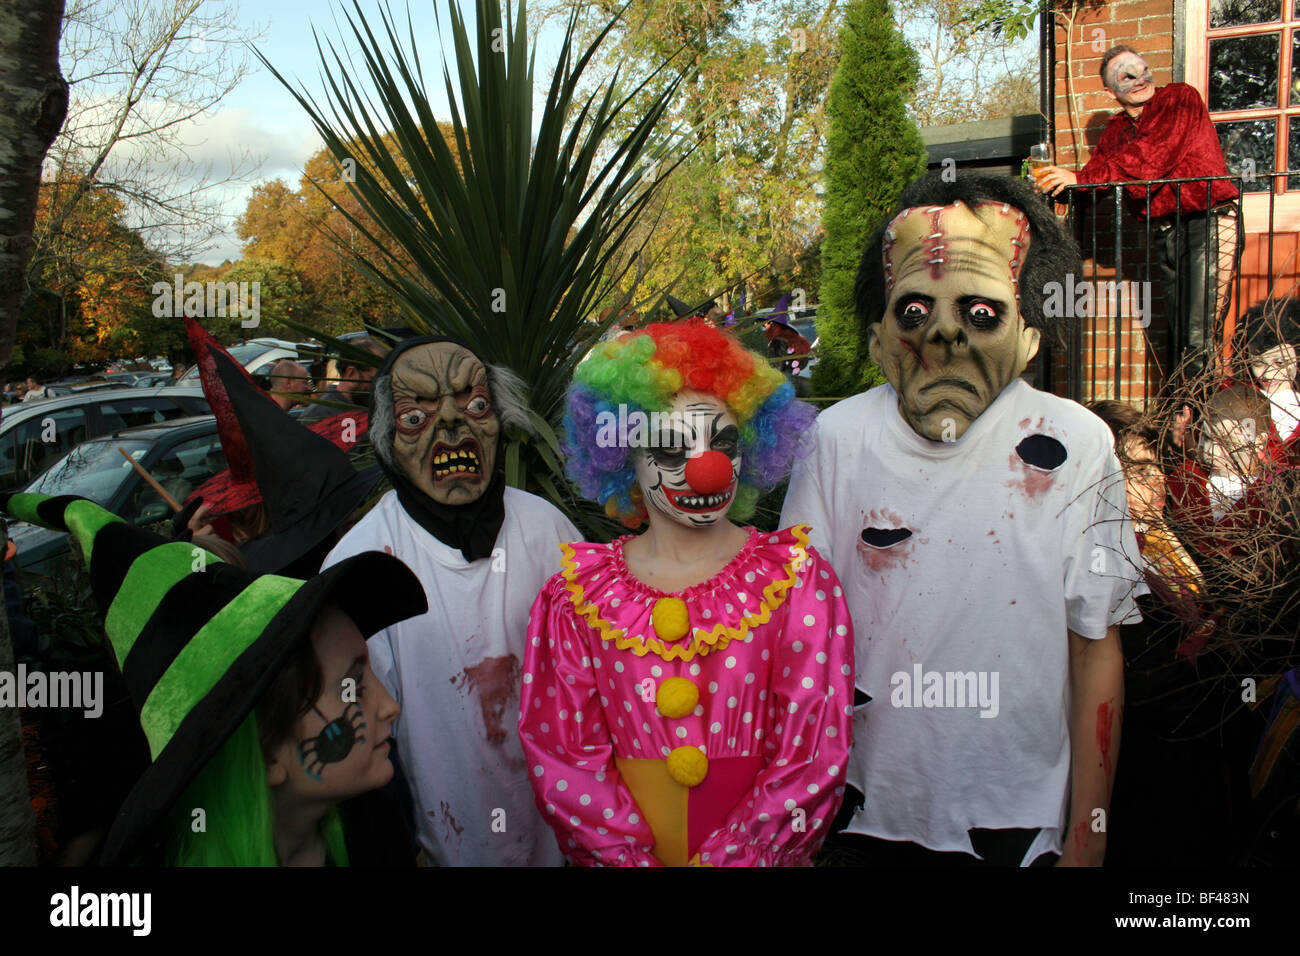 Halloween competition in Burley in the New Forrest Hampshire United Kingdom - Stock Image